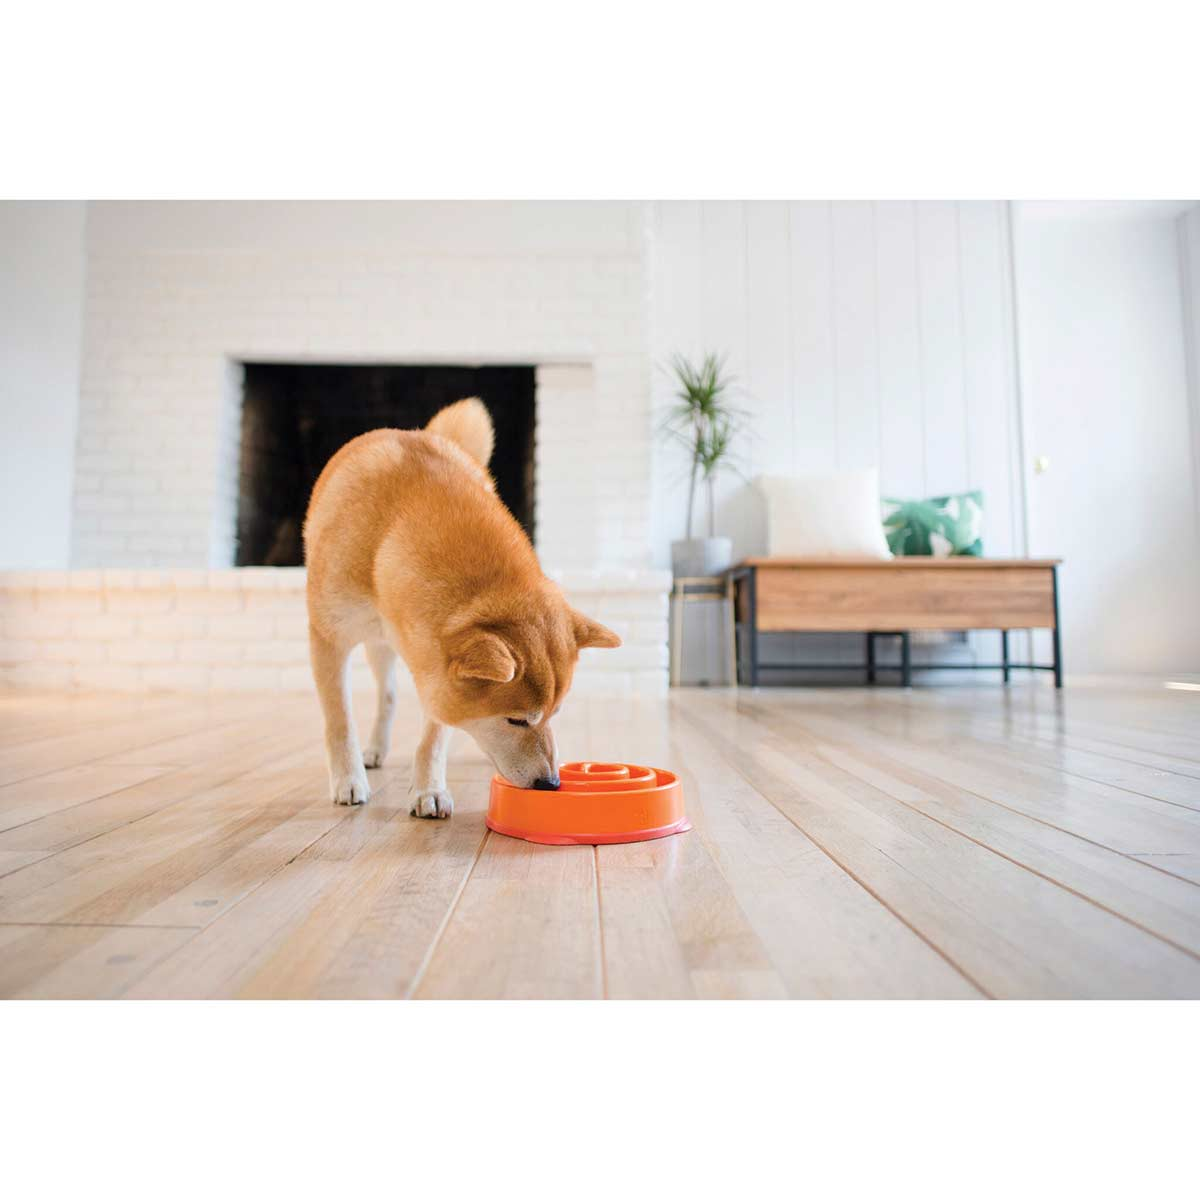 Dog eating with Outward Hound Slo-Bowl Coral Reg 12